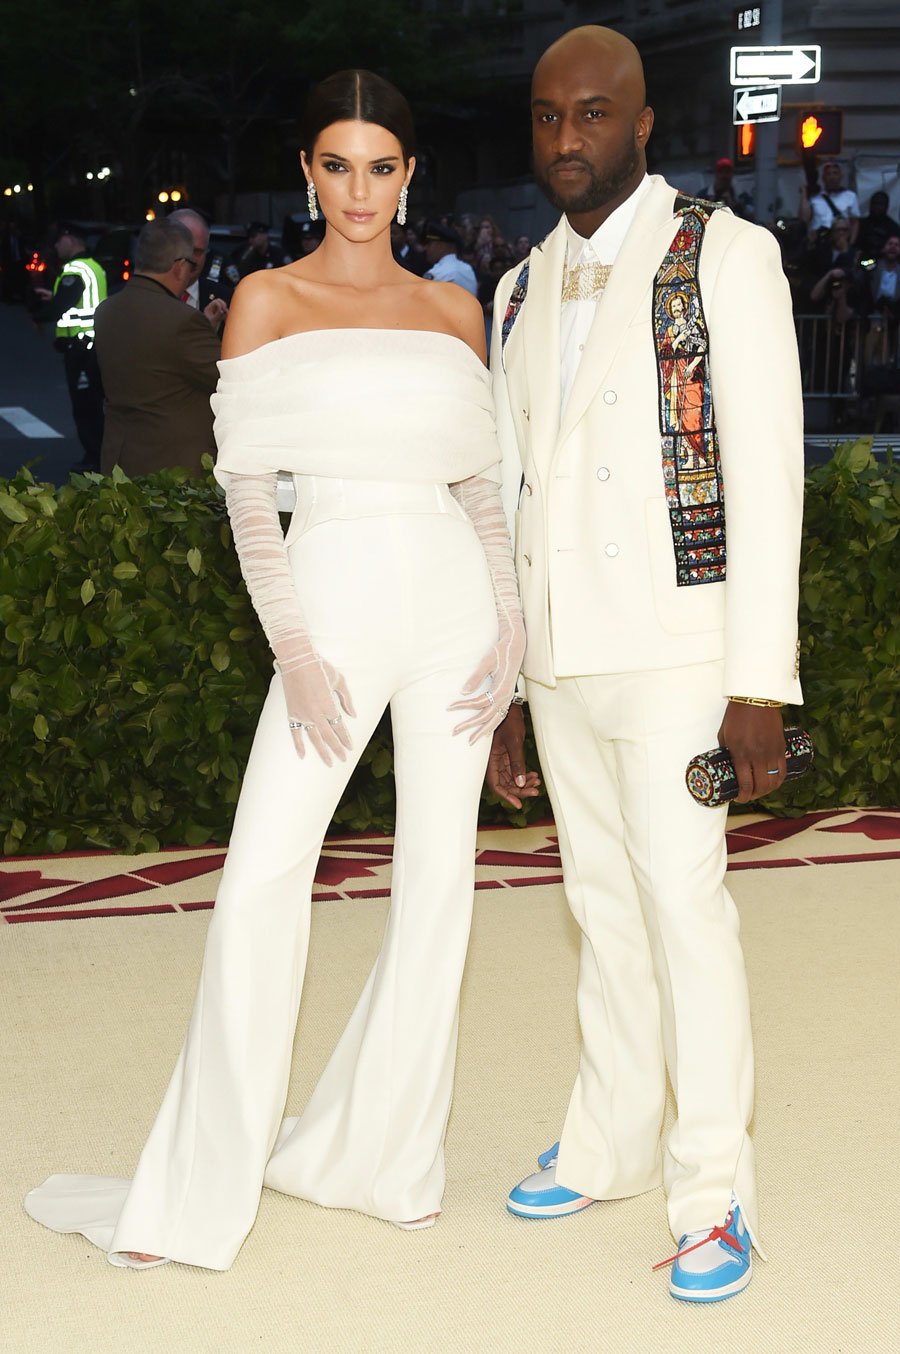 OFF-WHITE x Air Jordan 1 UNC (AQ0818-148) - Virgil Abloh (Met Gala 2018 On feet)